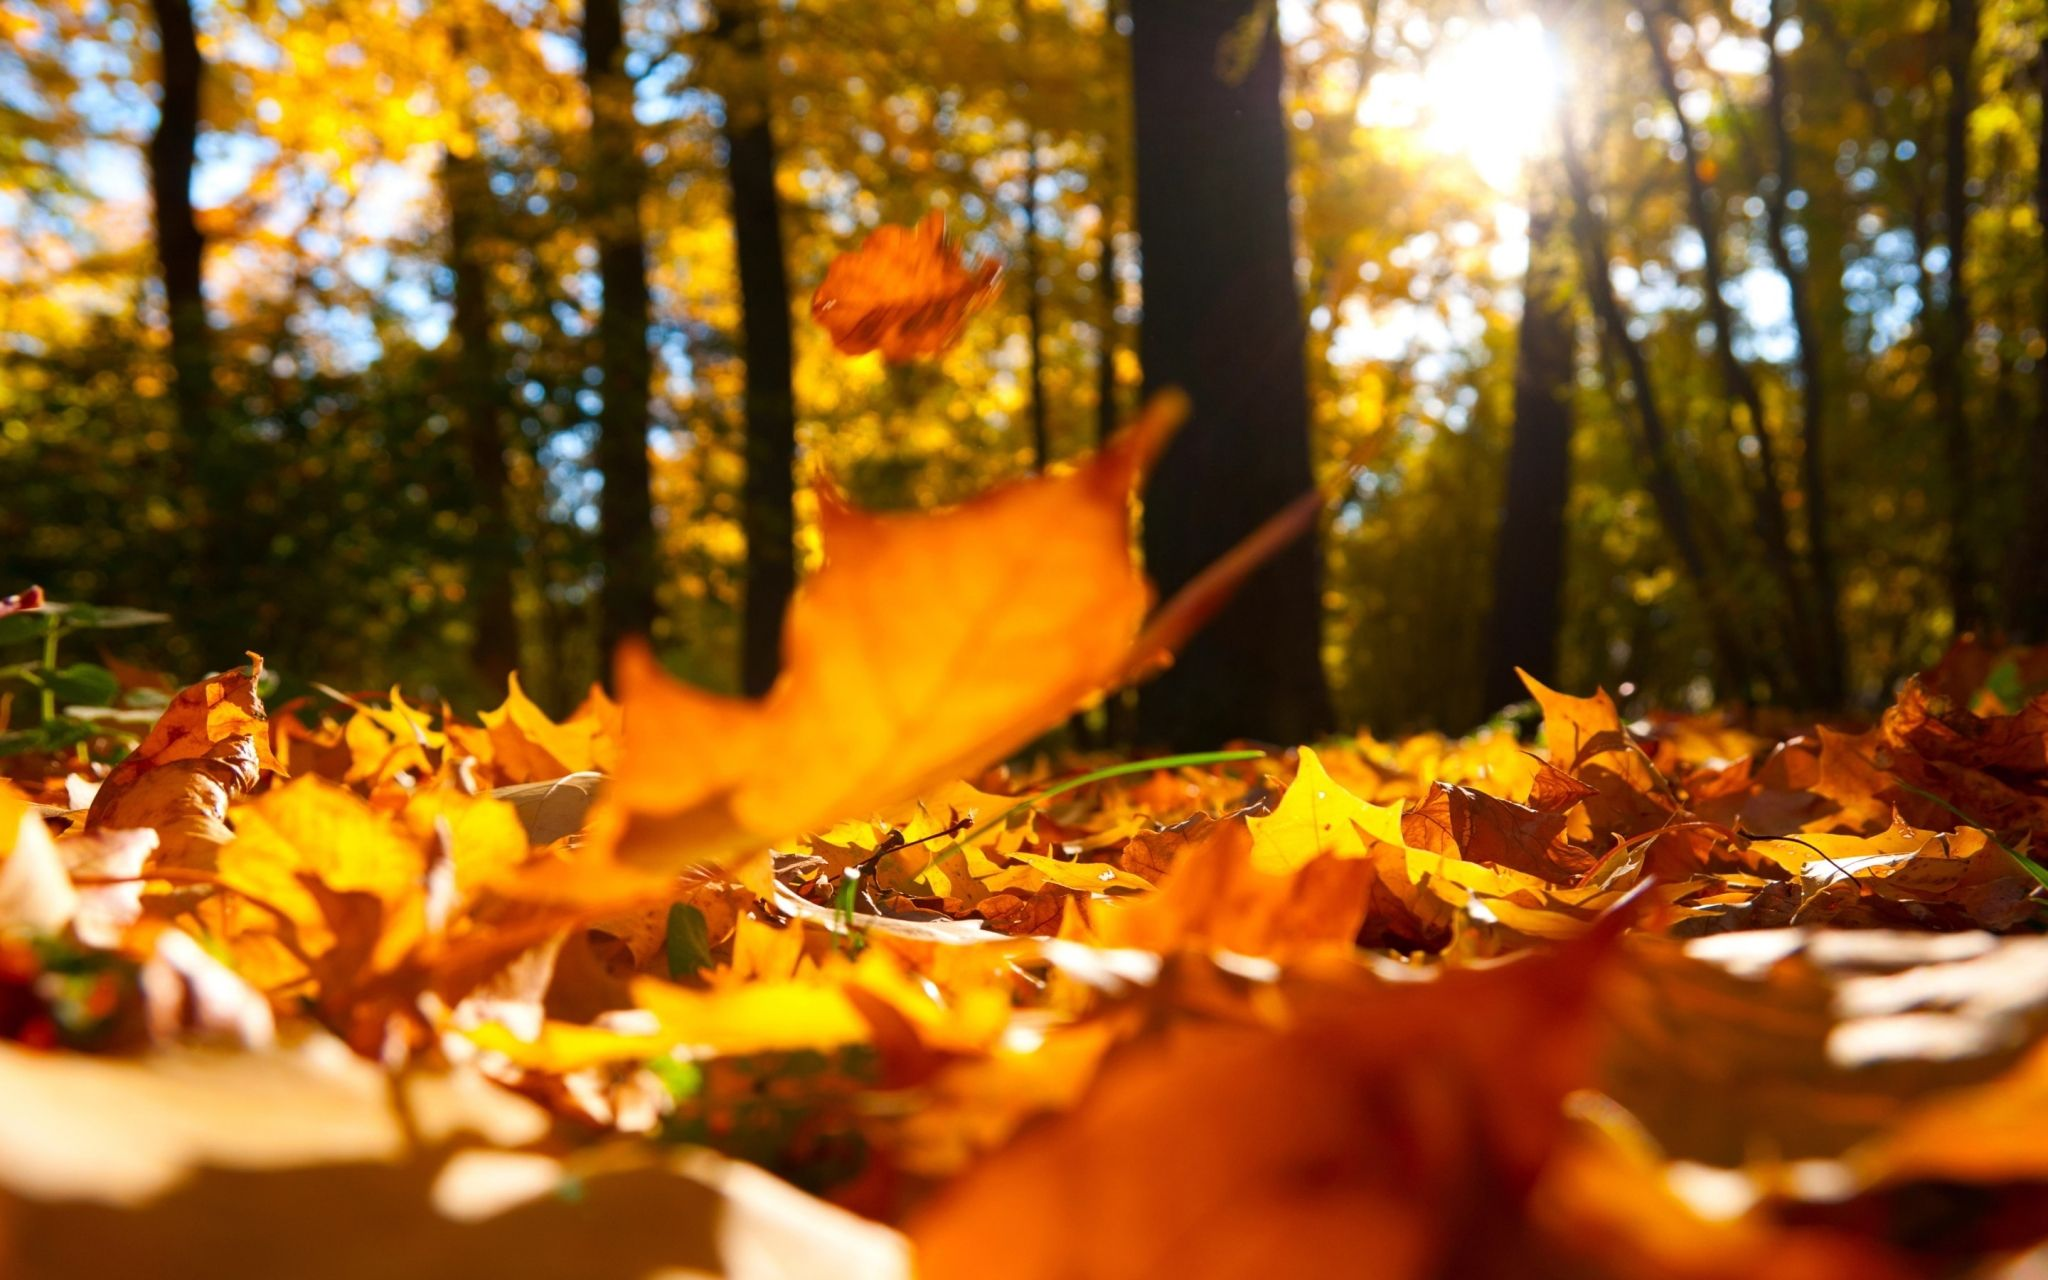 autumn hd widescreen wallpapers for laptop Autumn leaves